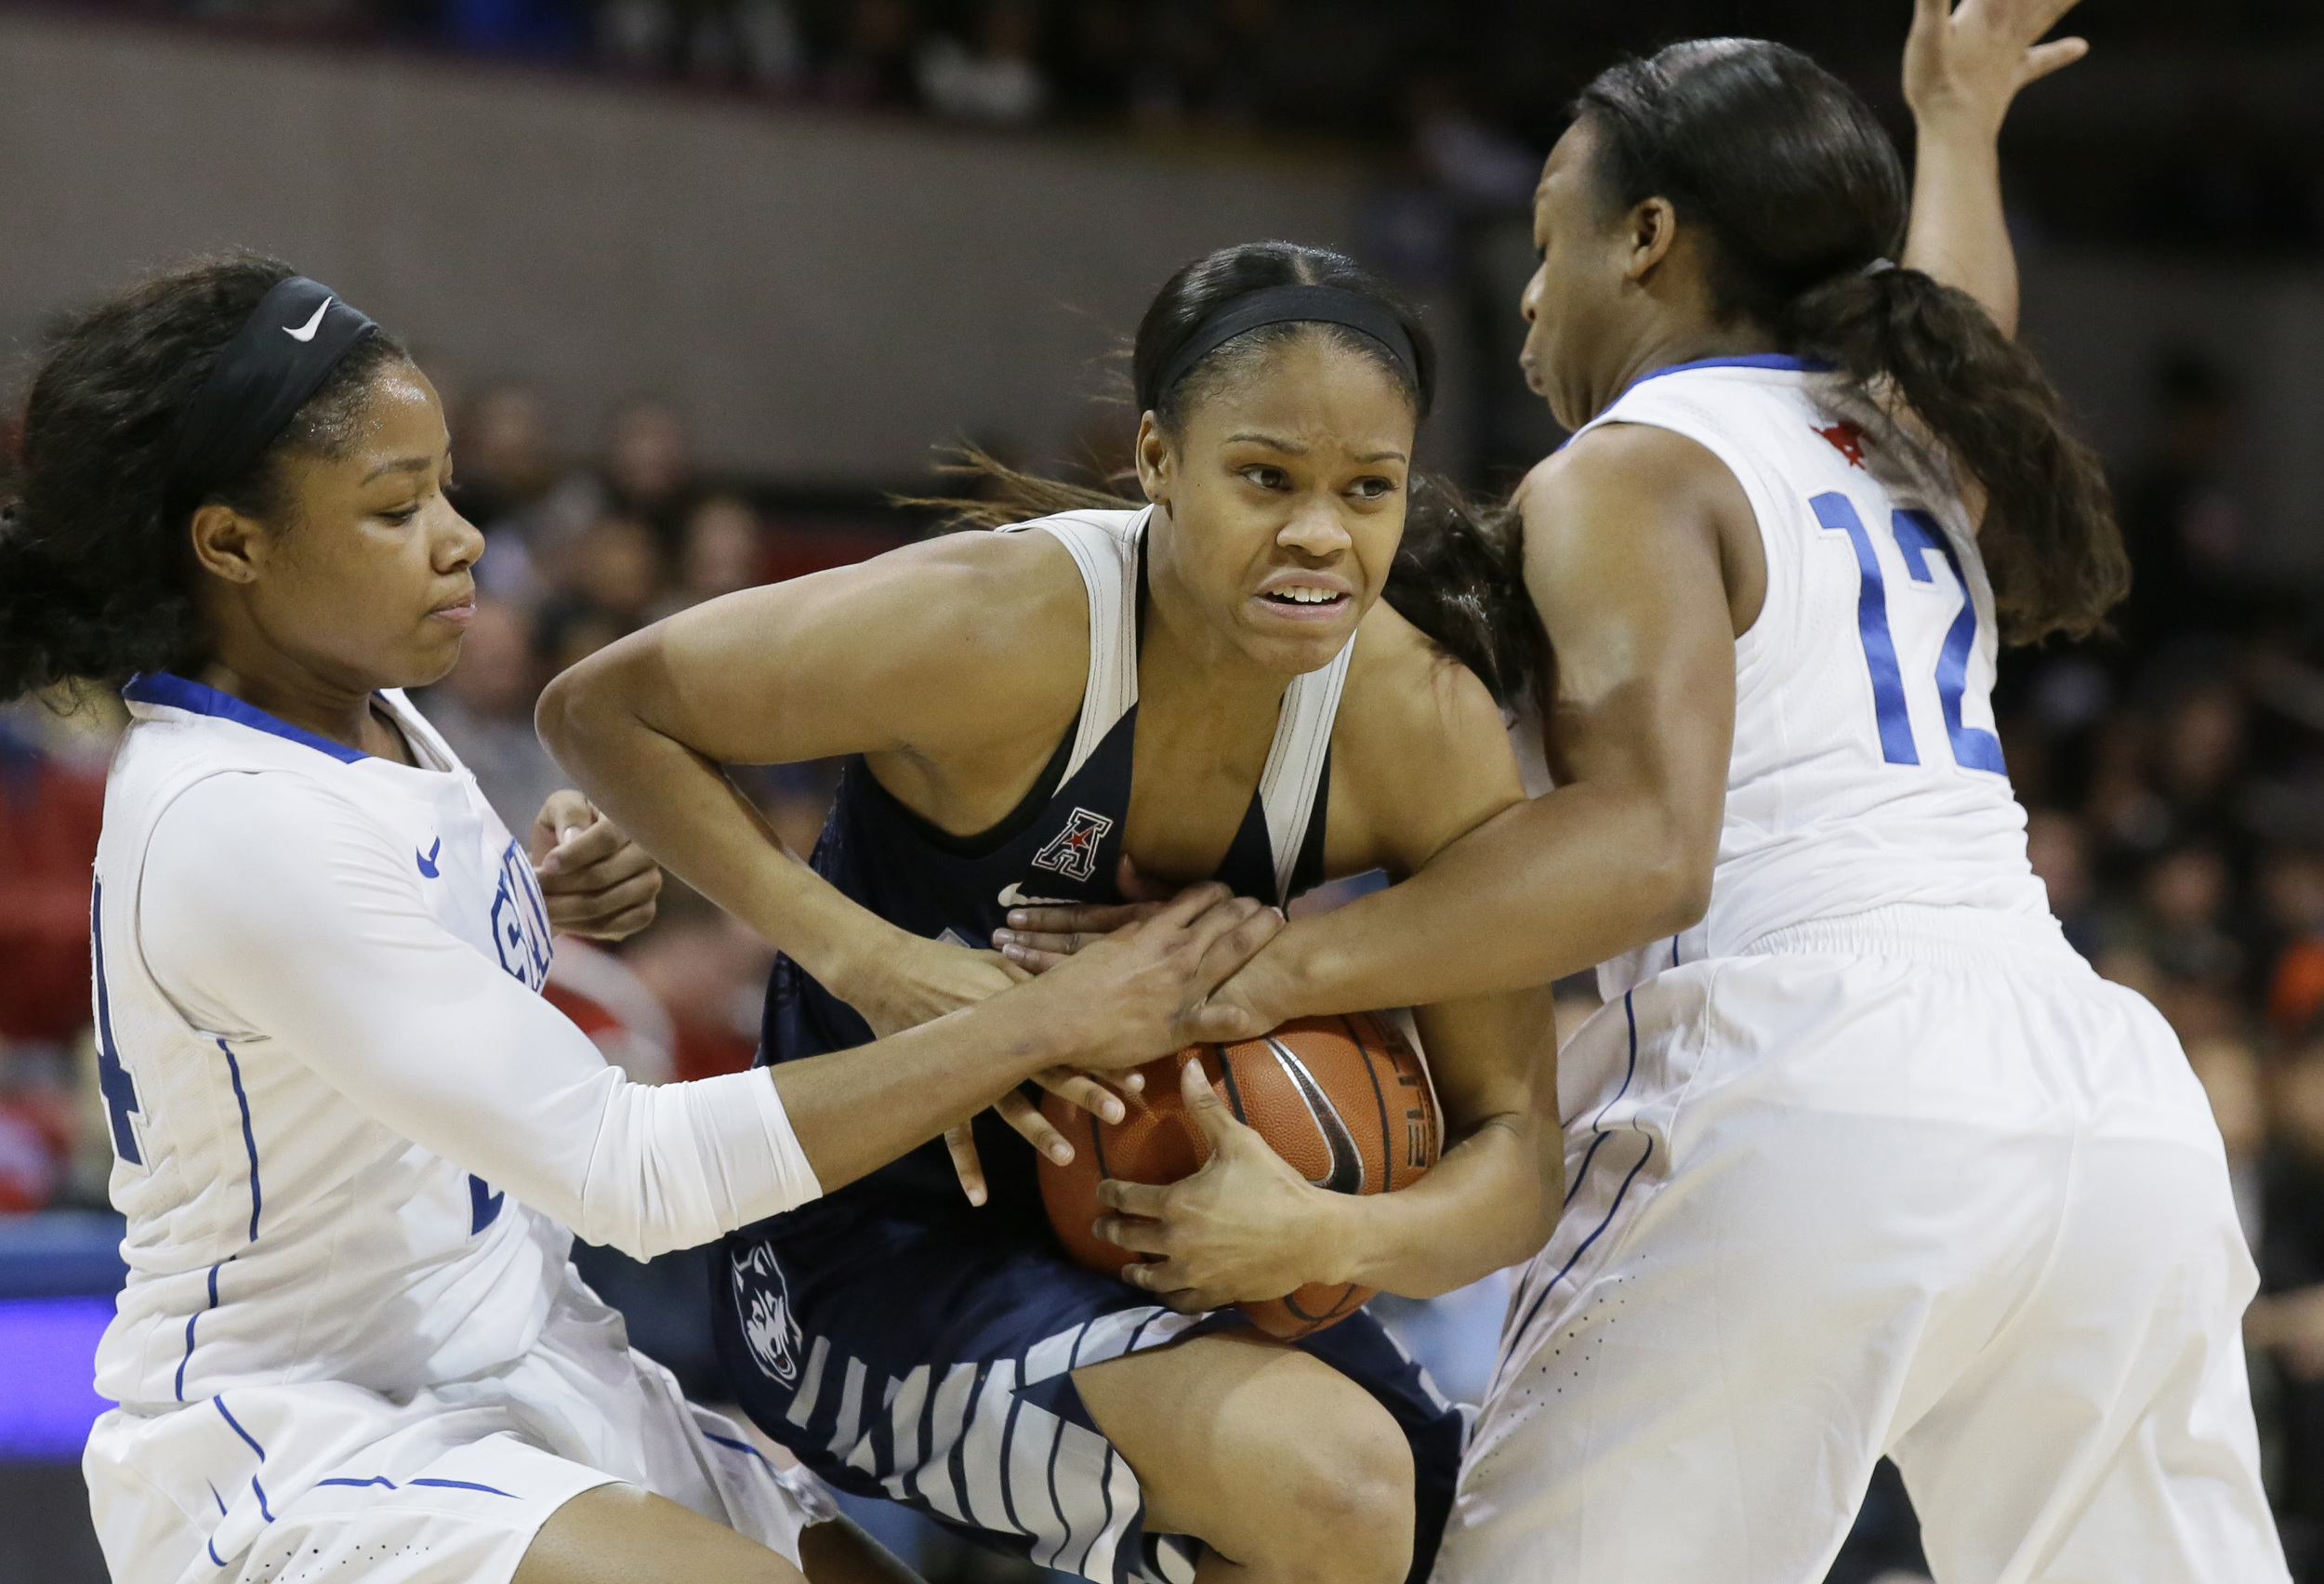 Connecticut guard Moriah Jefferson, center, drives between SMU guards Morgan Bolton (12) and Kamray Mickens (24) during the second half of an NCAA college basketball game Saturday, Jan. 23, 2016, in Dallas. UConn won 90-37. (LM Otero/AP)